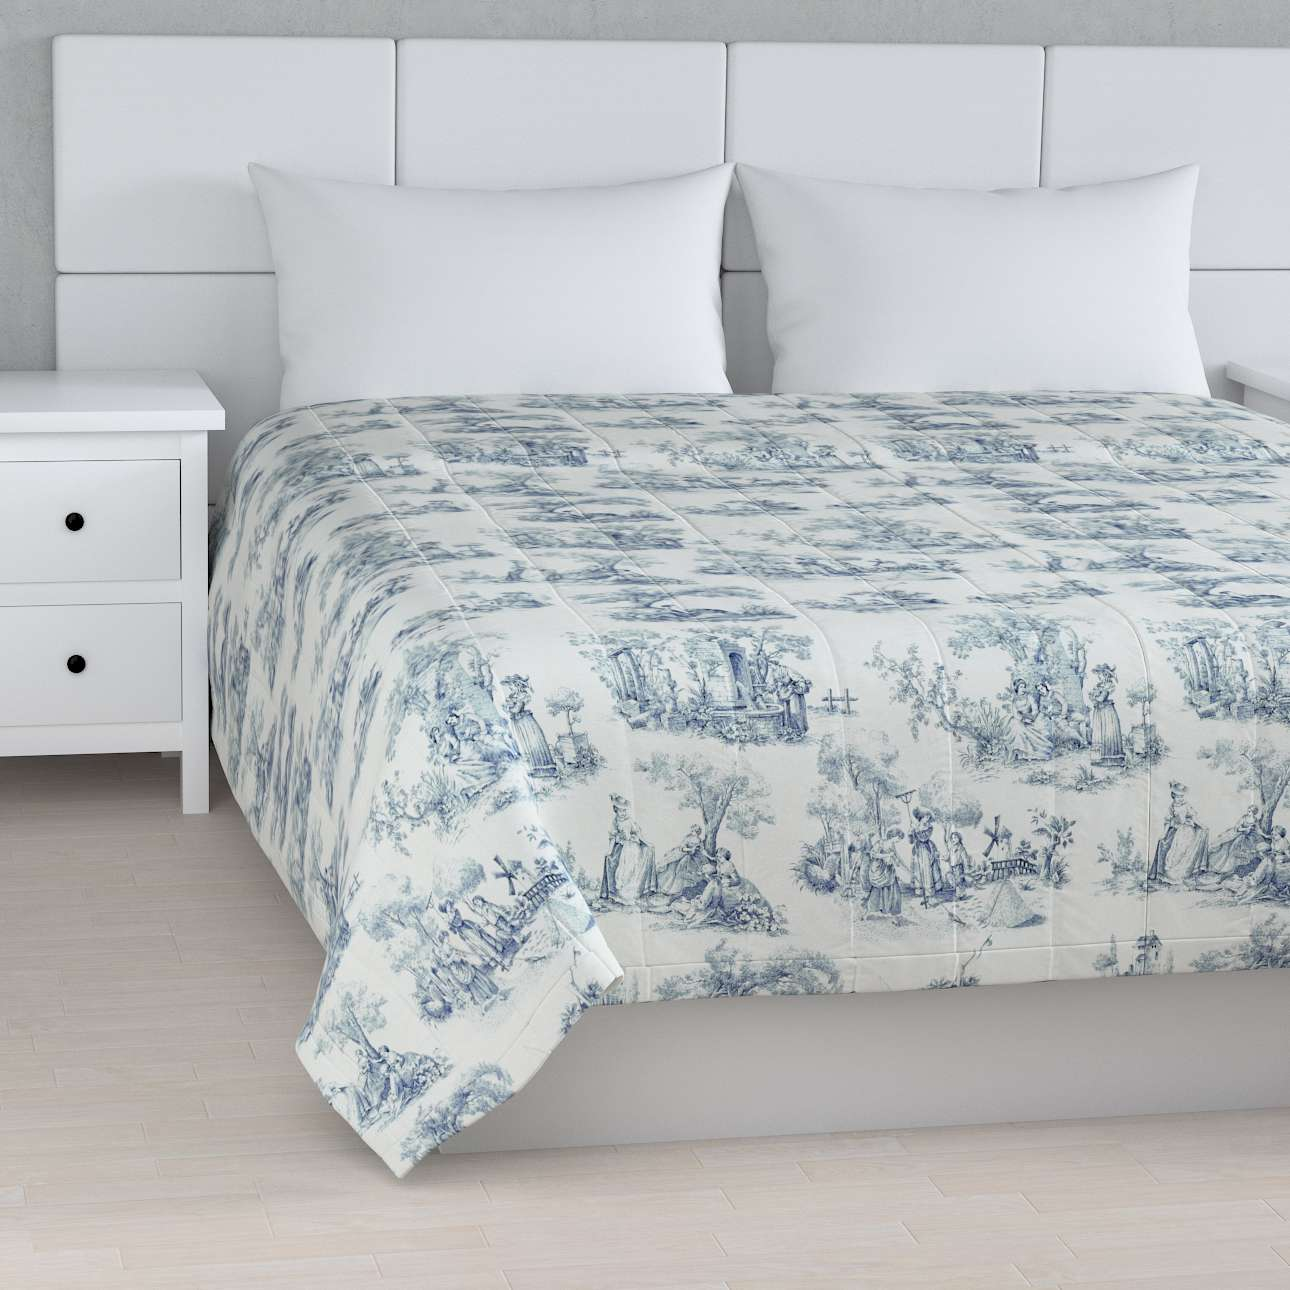 Stripe quilted throw 260 x 210 cm (102 x 83 inch) in collection Avinon, fabric: 132-66